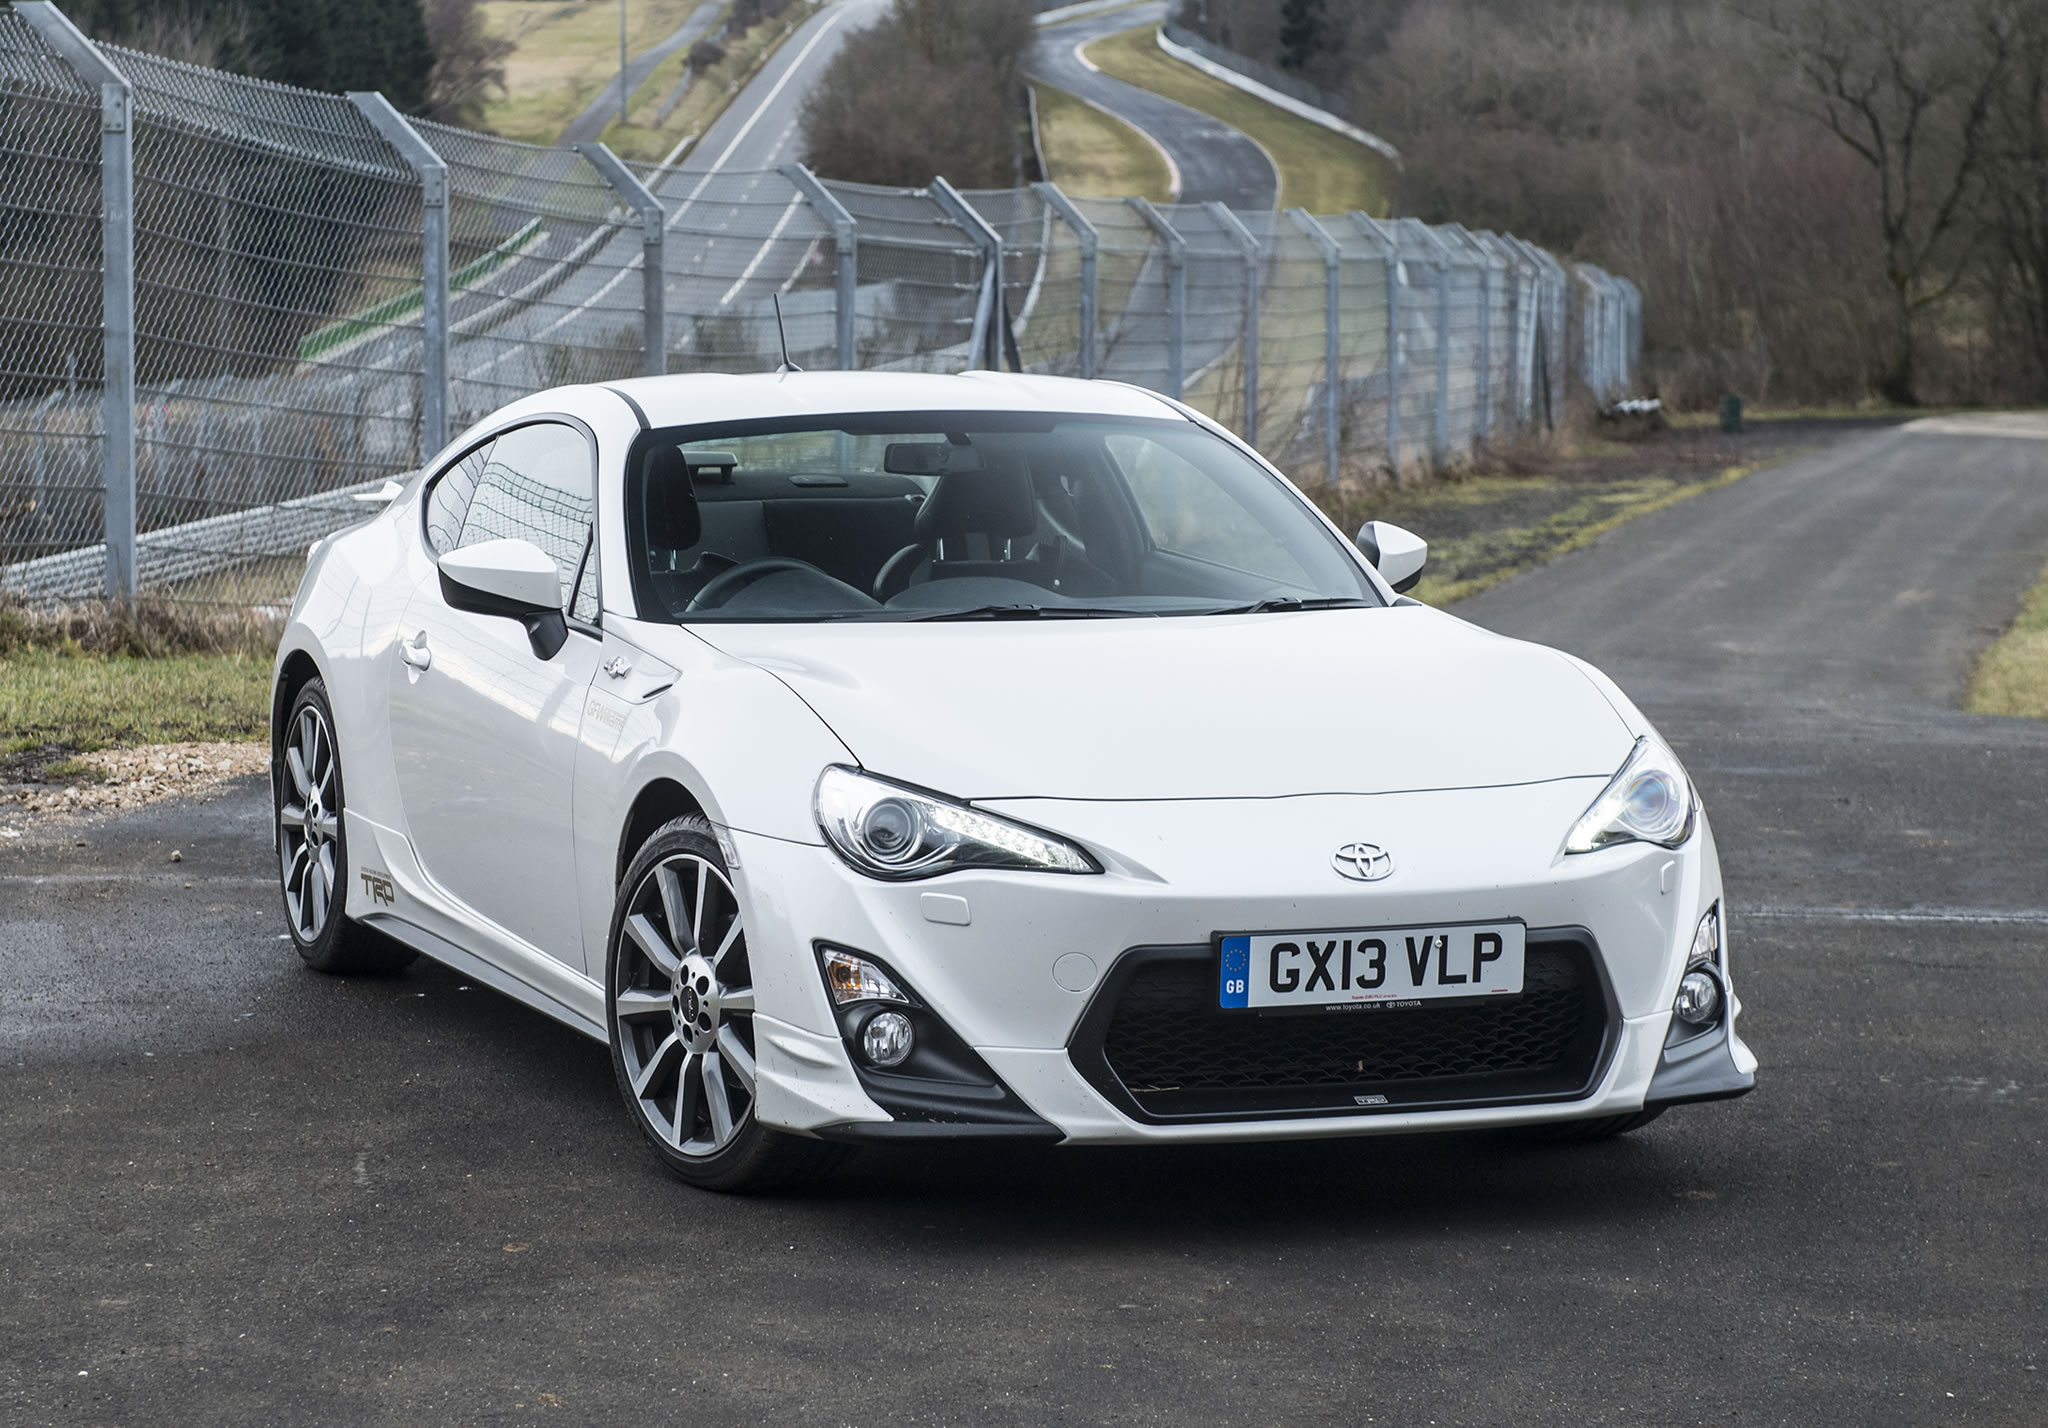 2014 Toyota Gt 86 Trd Front Photo Pearl White Color